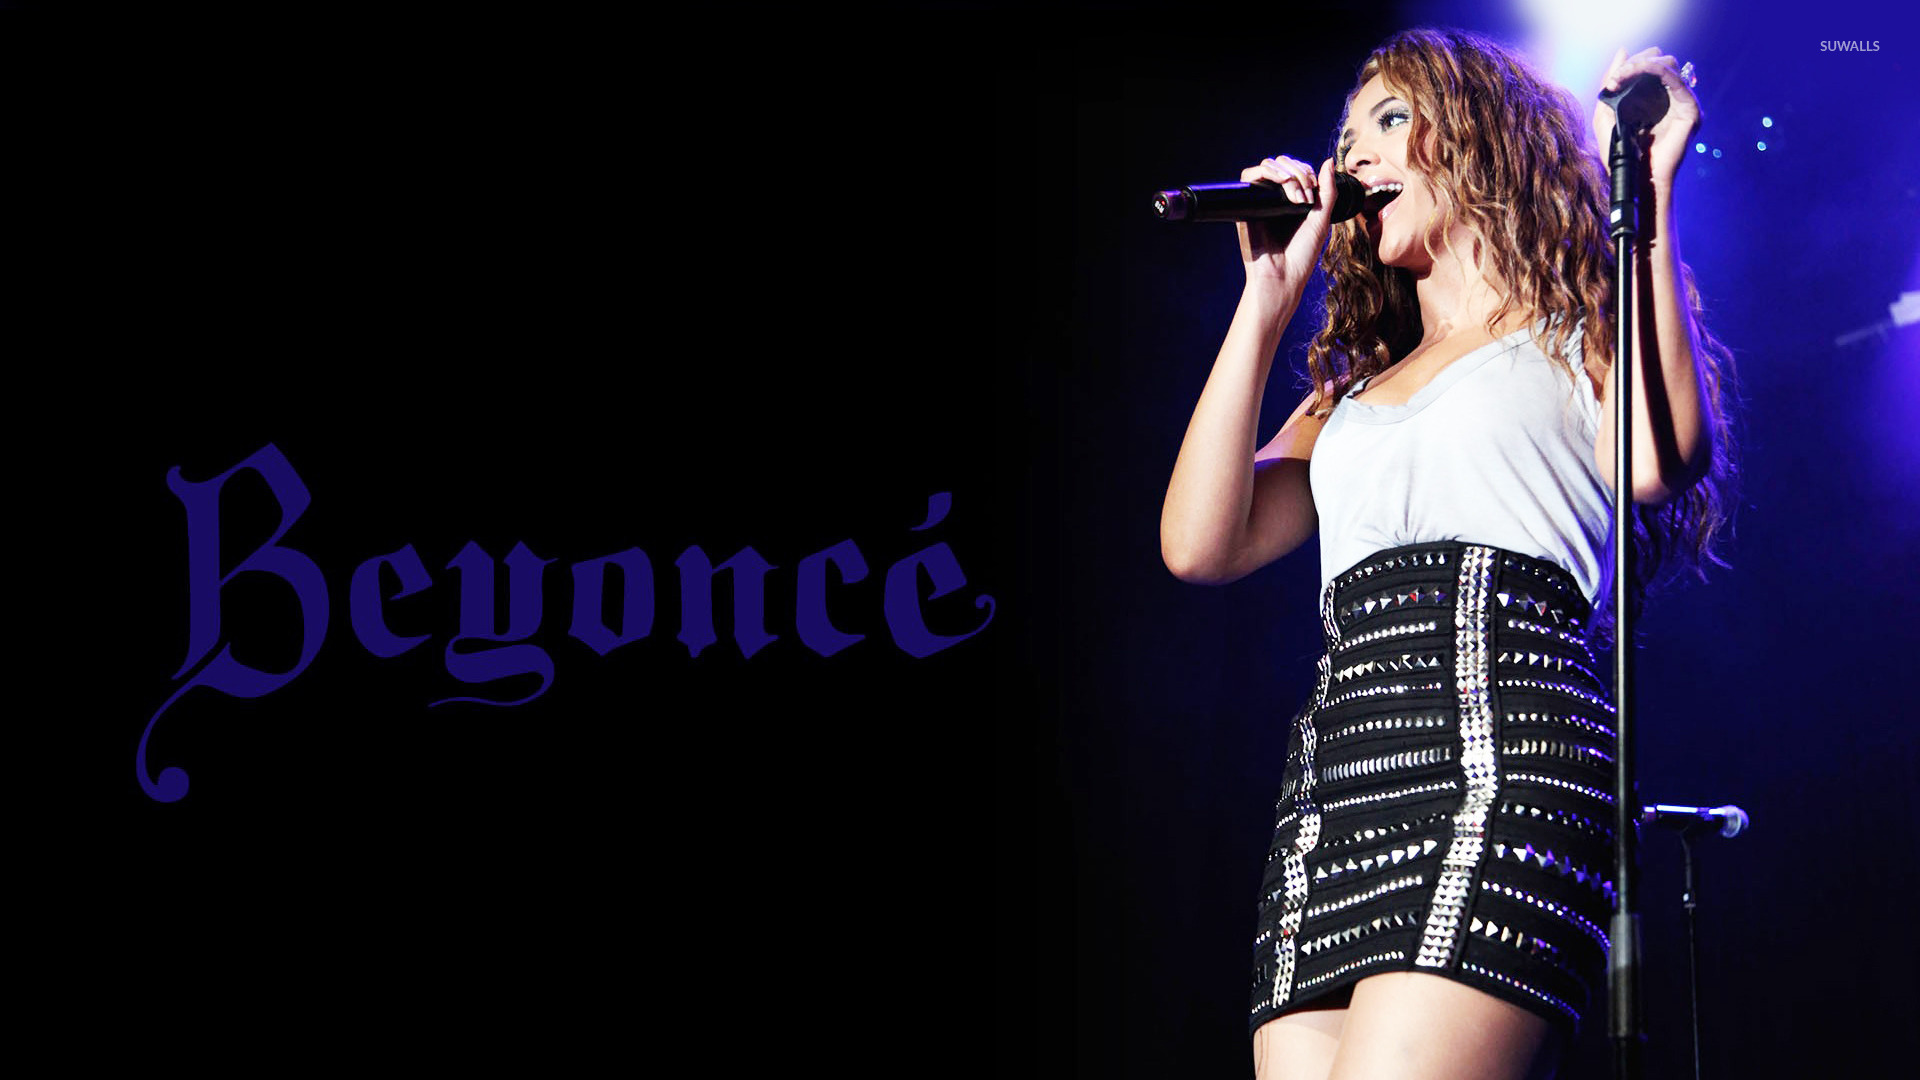 beyonce knowles desktop background - photo #37